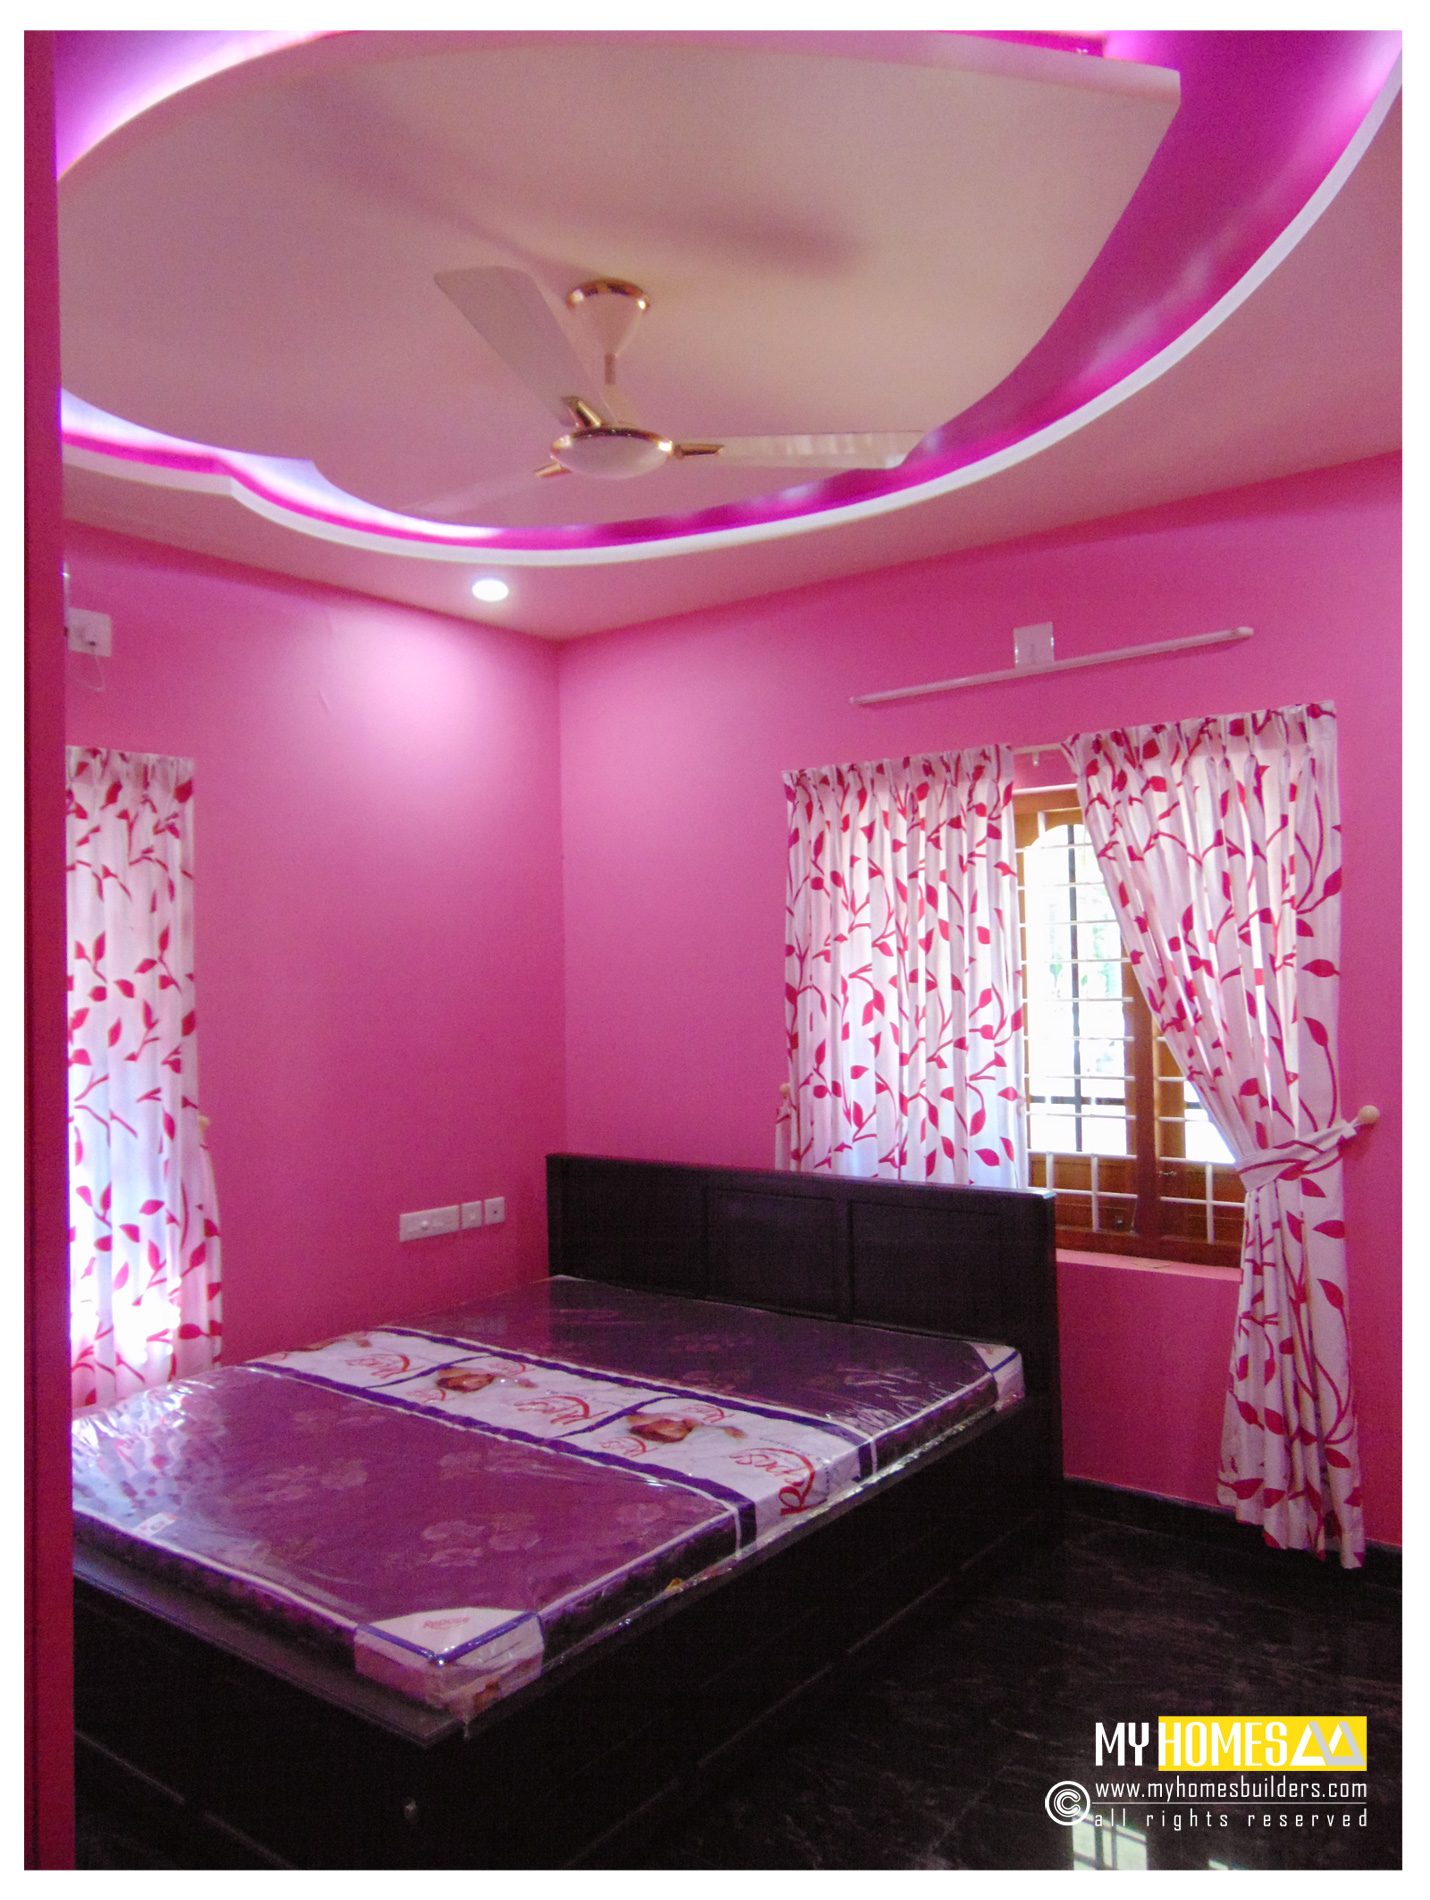 Simple style kerala bedroom designs ideas for home interior for 2 bhk interior decoration pictures